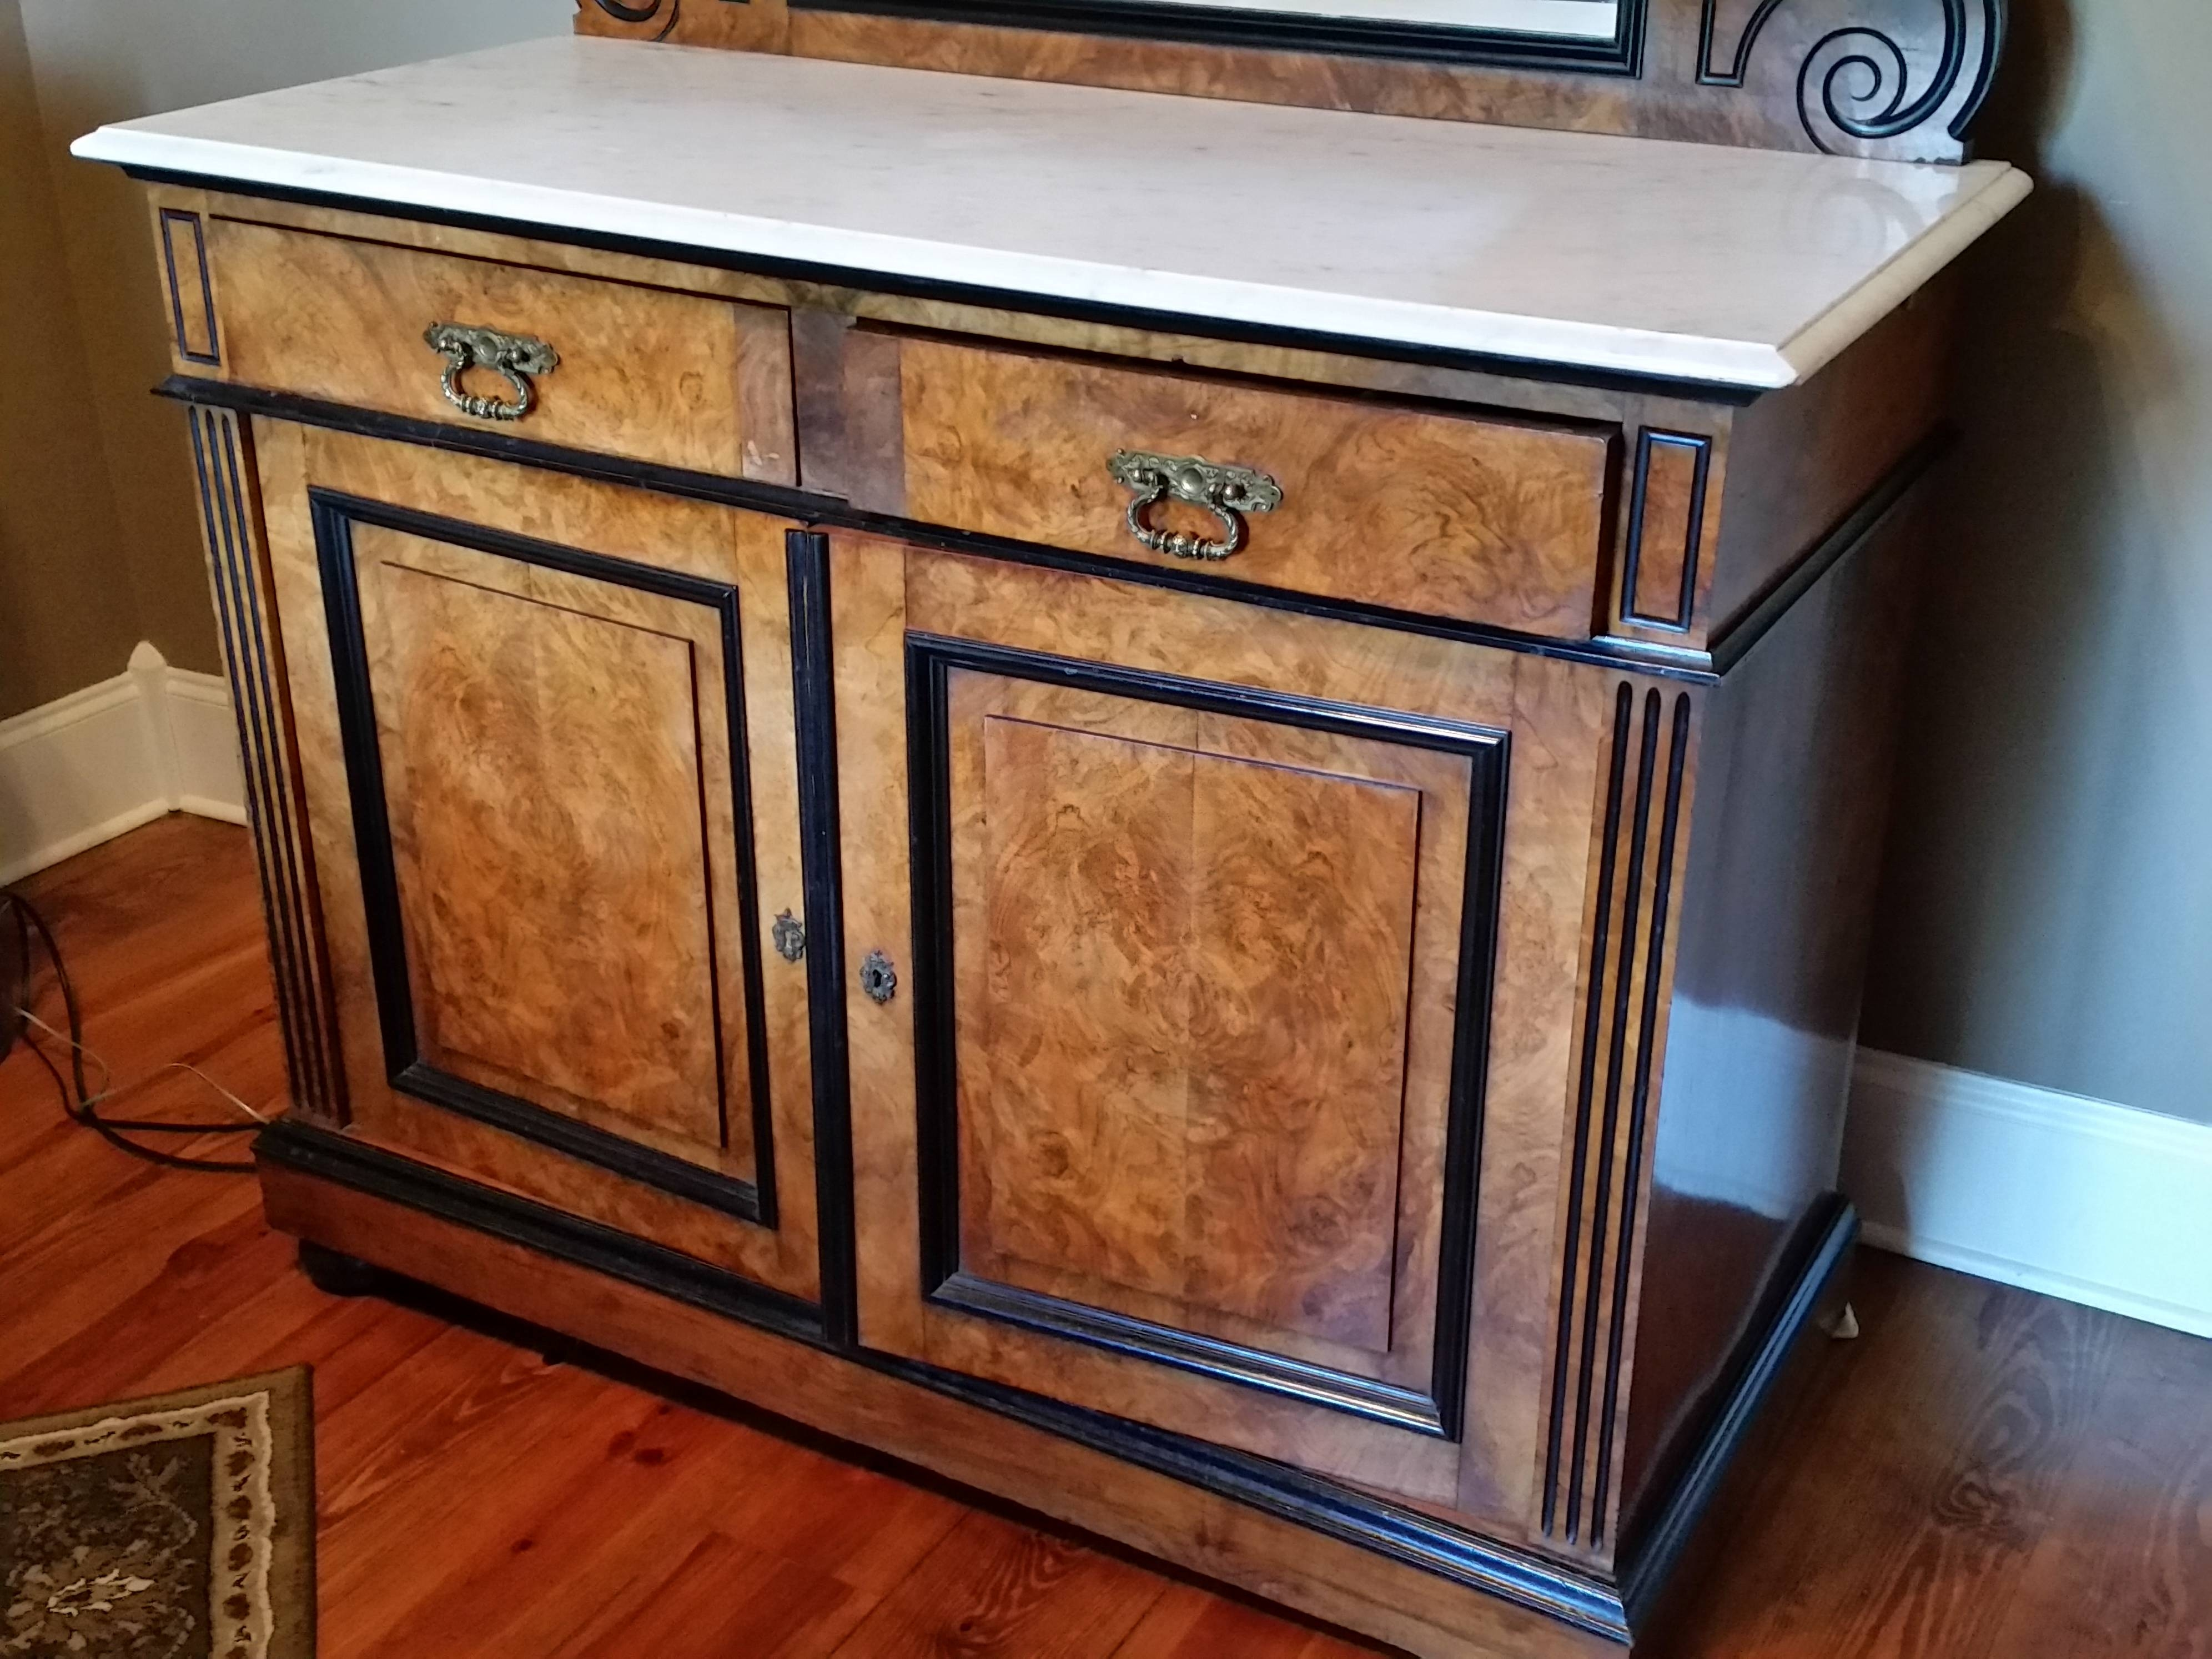 19Th Century Buffet Sideboard For Sale | Antiques | Classifieds with regard to Antique Marble Top Sideboards (Image 2 of 15)